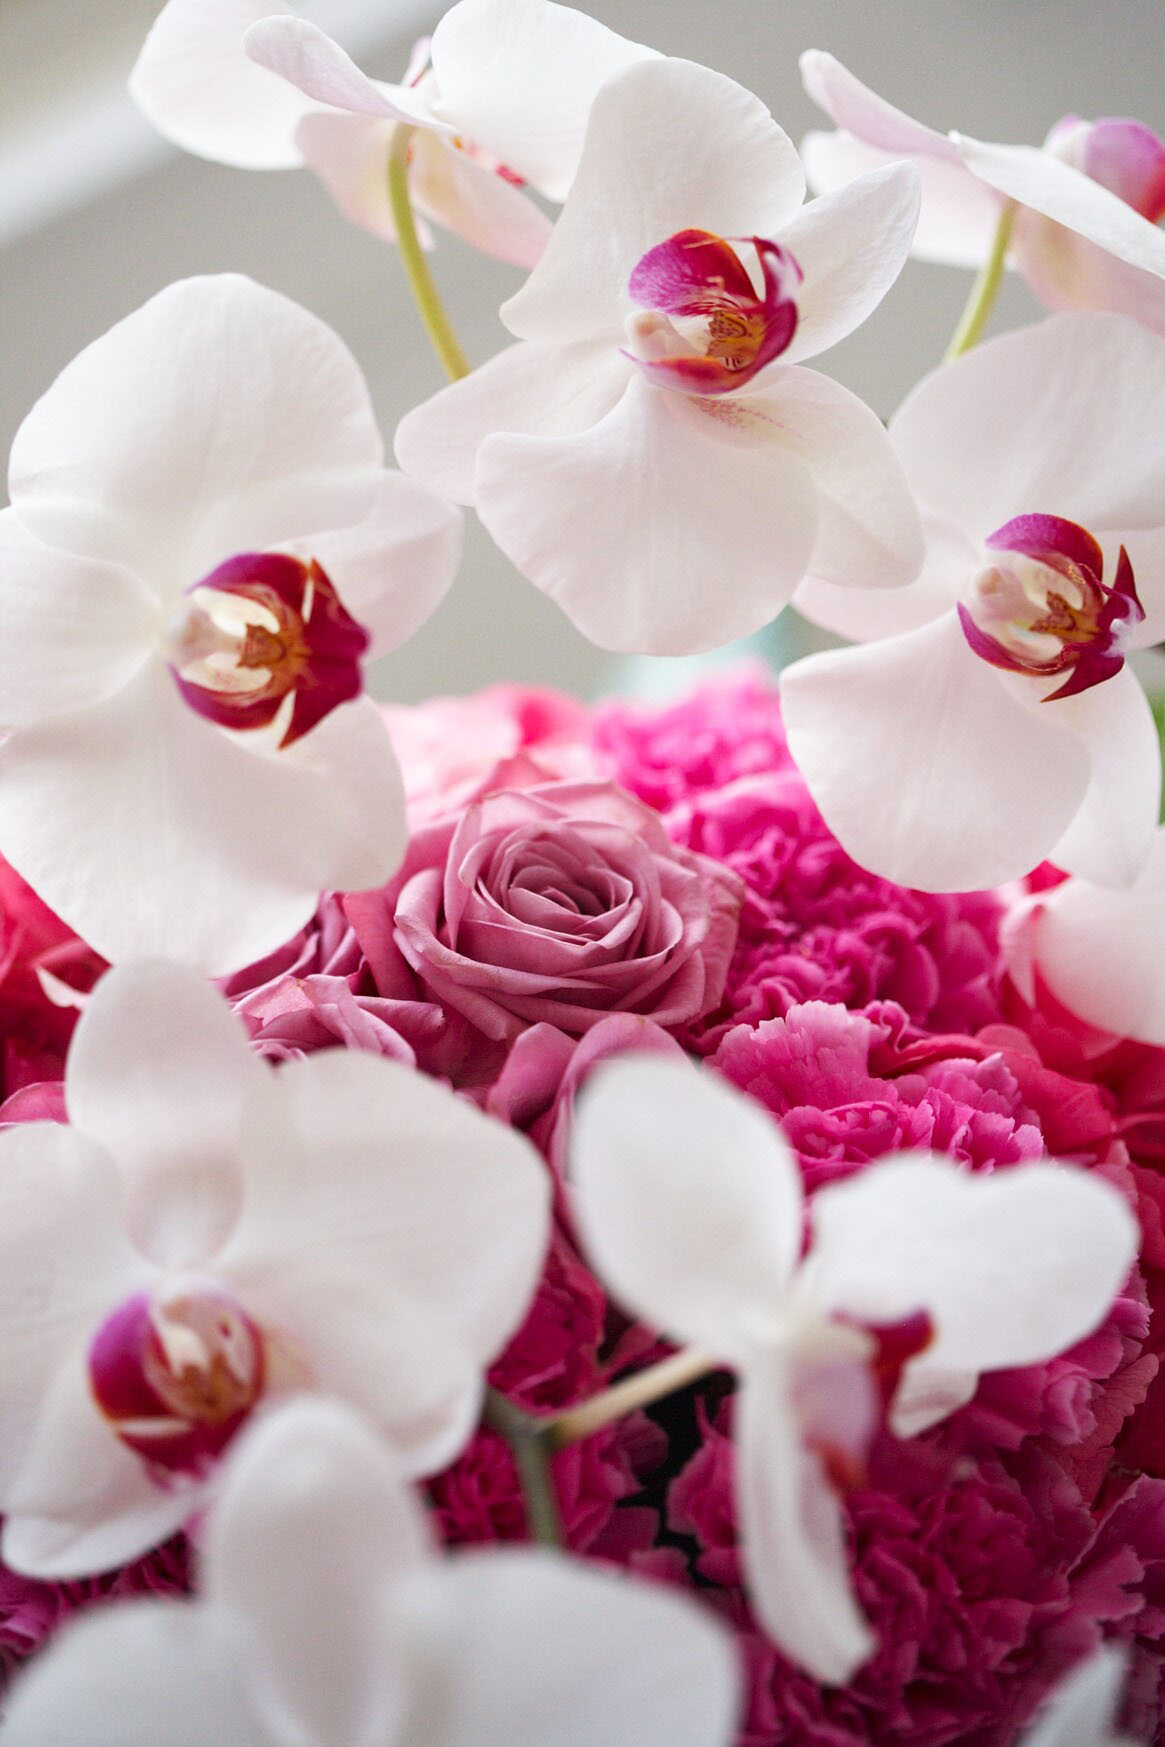 Phalaenopsis Orchid Information From Flowers